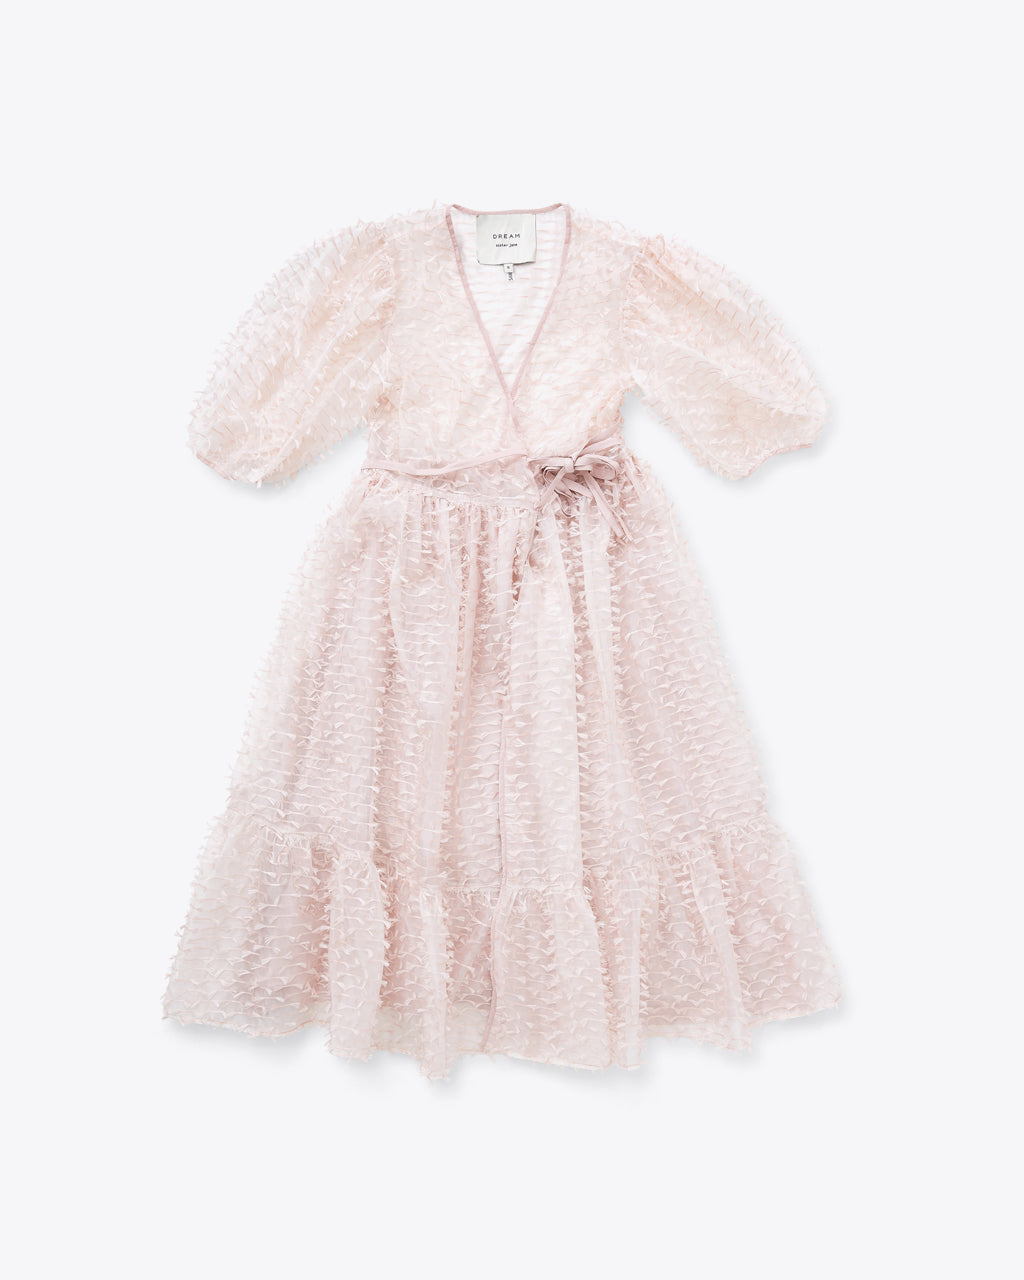 pastel pink v-neck dress with a feather like texture design